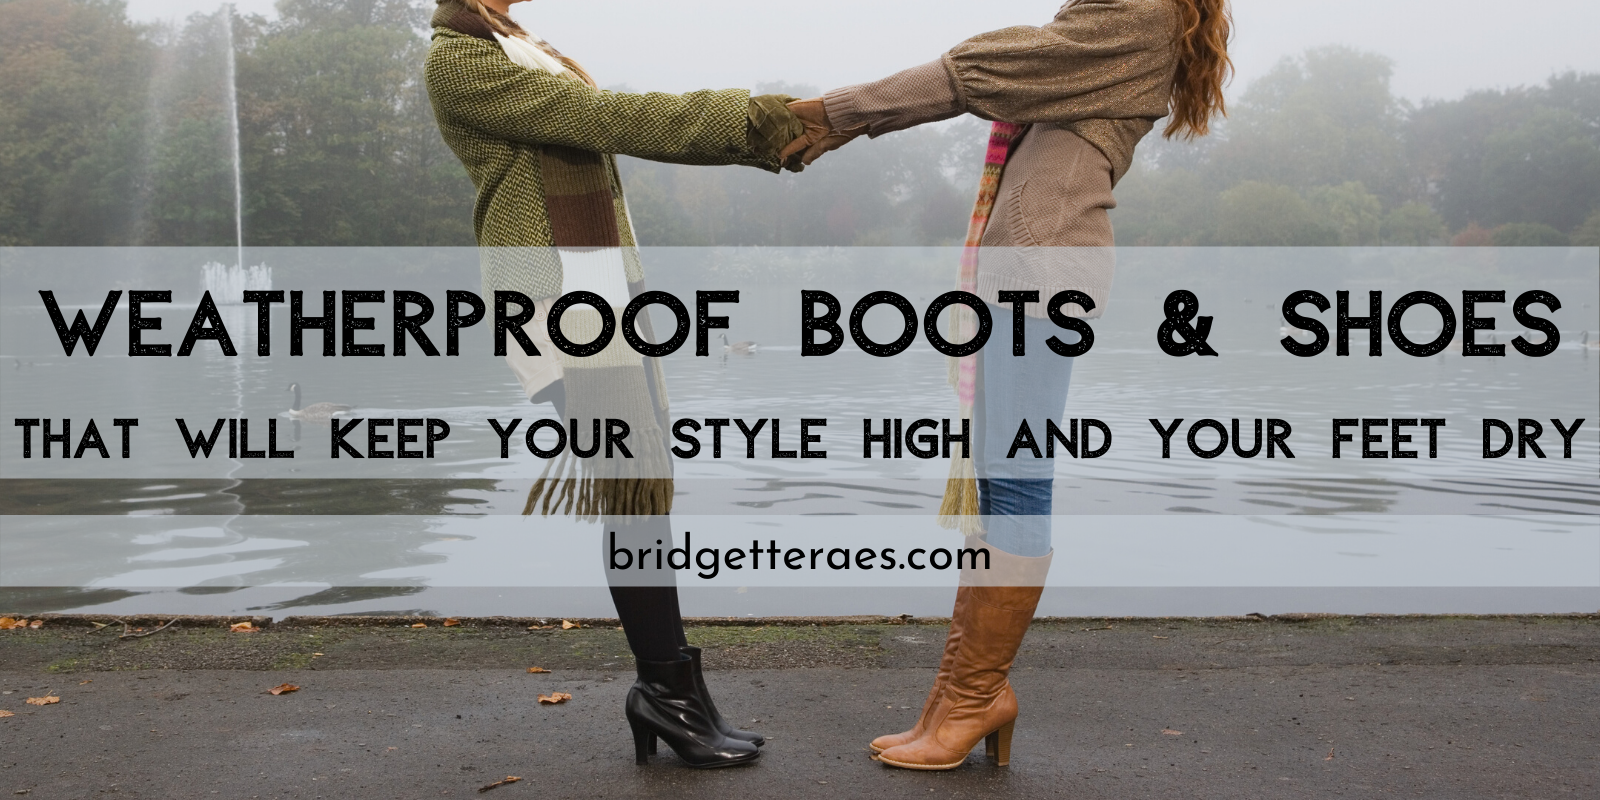 Weatherproof Boots and Shoes that will Keep Your Style High and Your Feet Dry